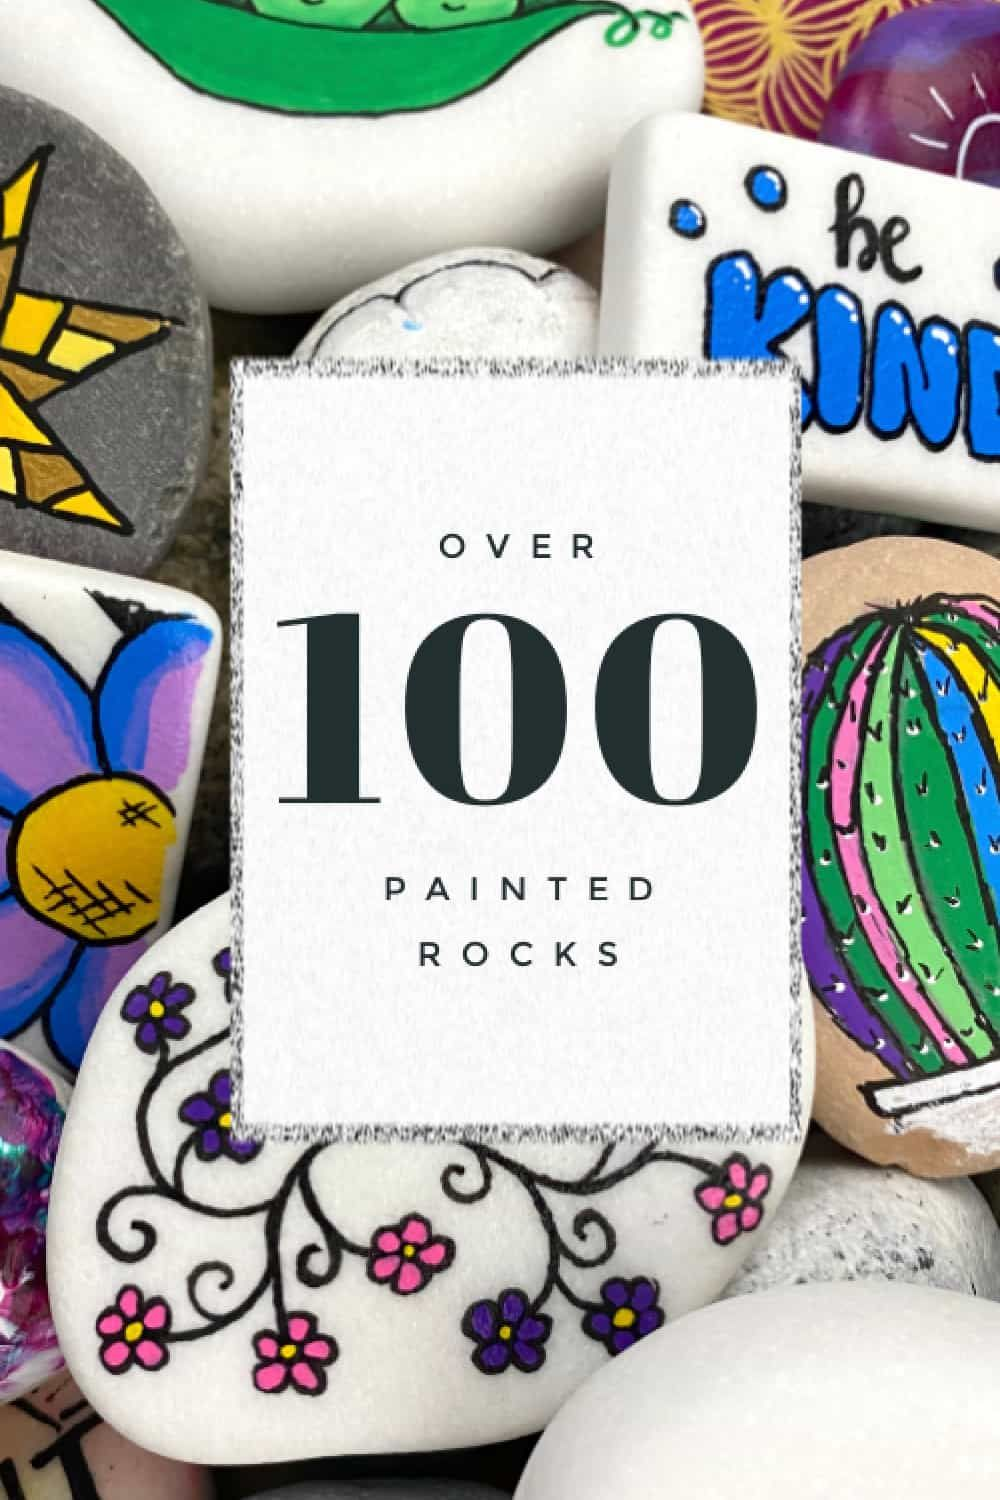 100 Easy Rock Painting Ideas That Will Inspire You Rock Painting 101 Painted Rocks Rock Painting Ideas Easy Rock Painting Tutorial